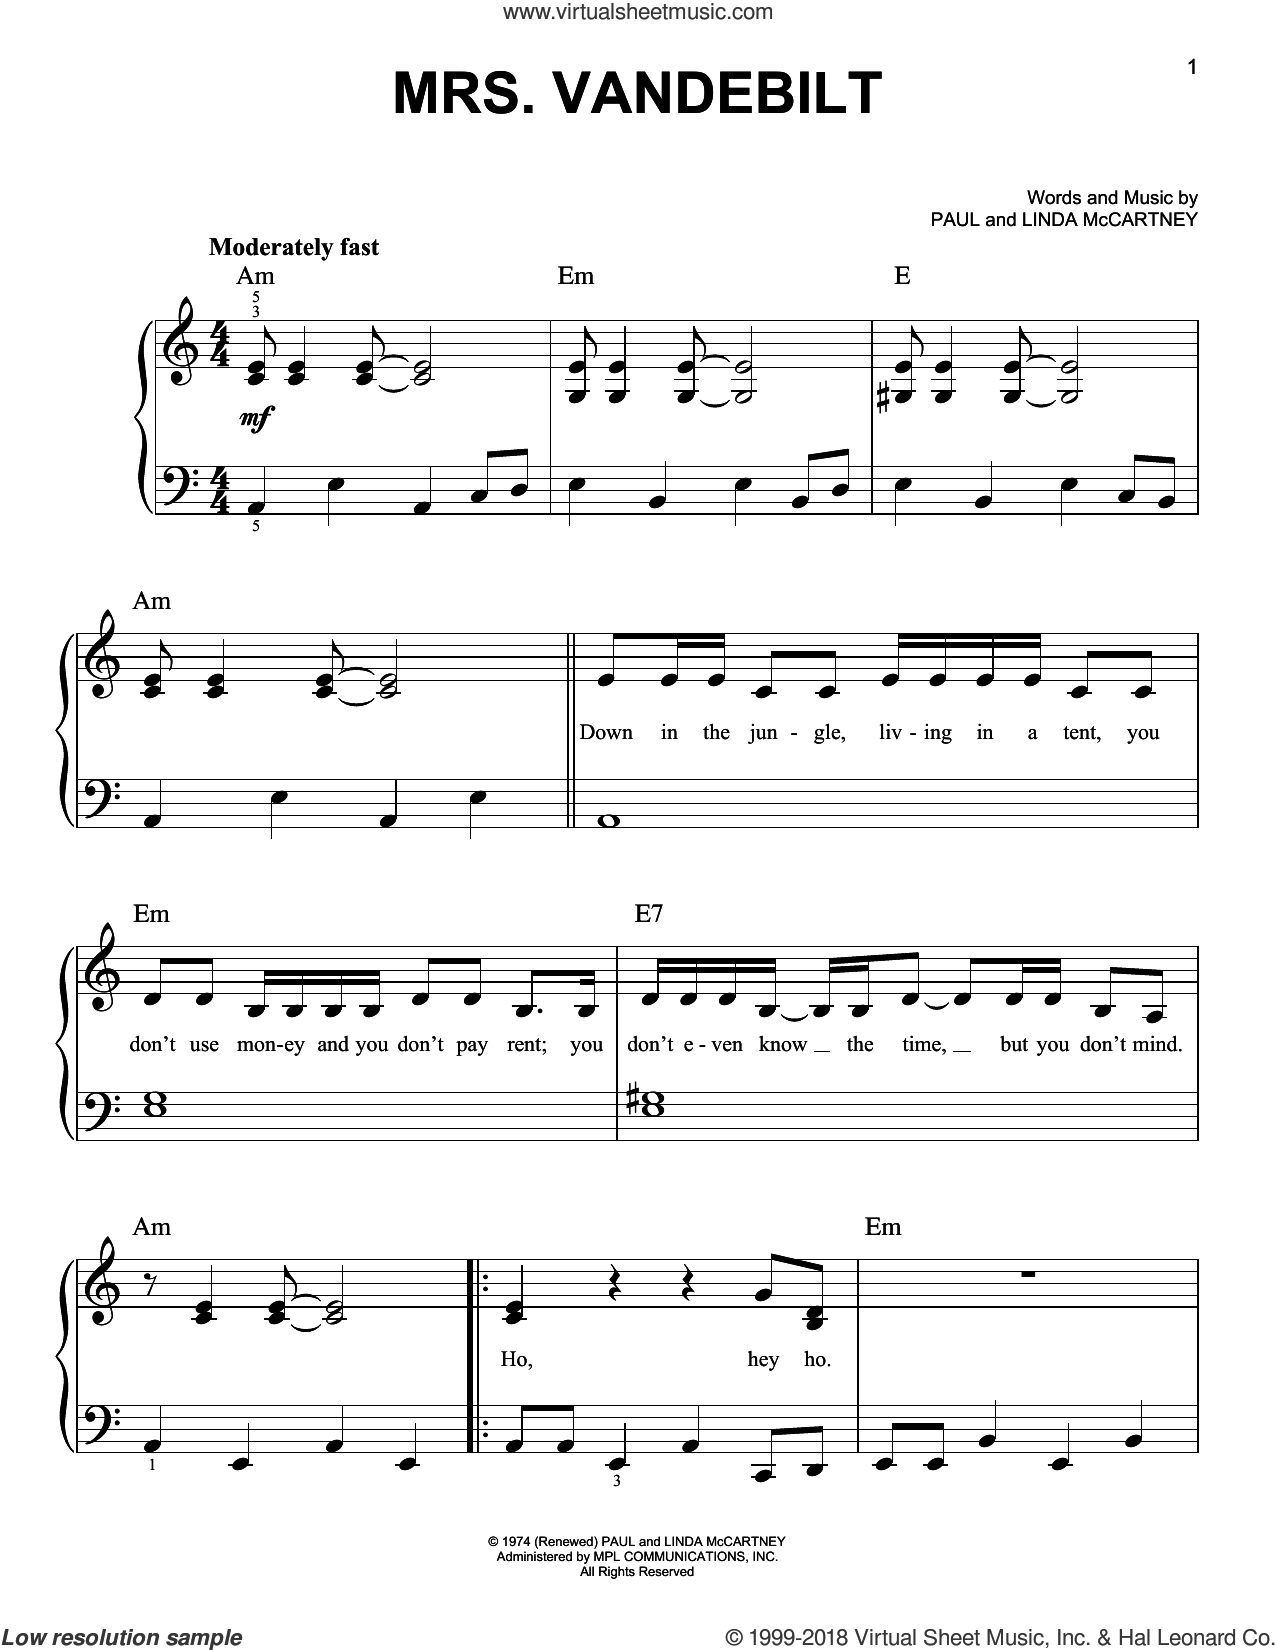 Mrs. Vandebilt sheet music for piano solo by Paul McCartney and Linda McCartney, easy skill level